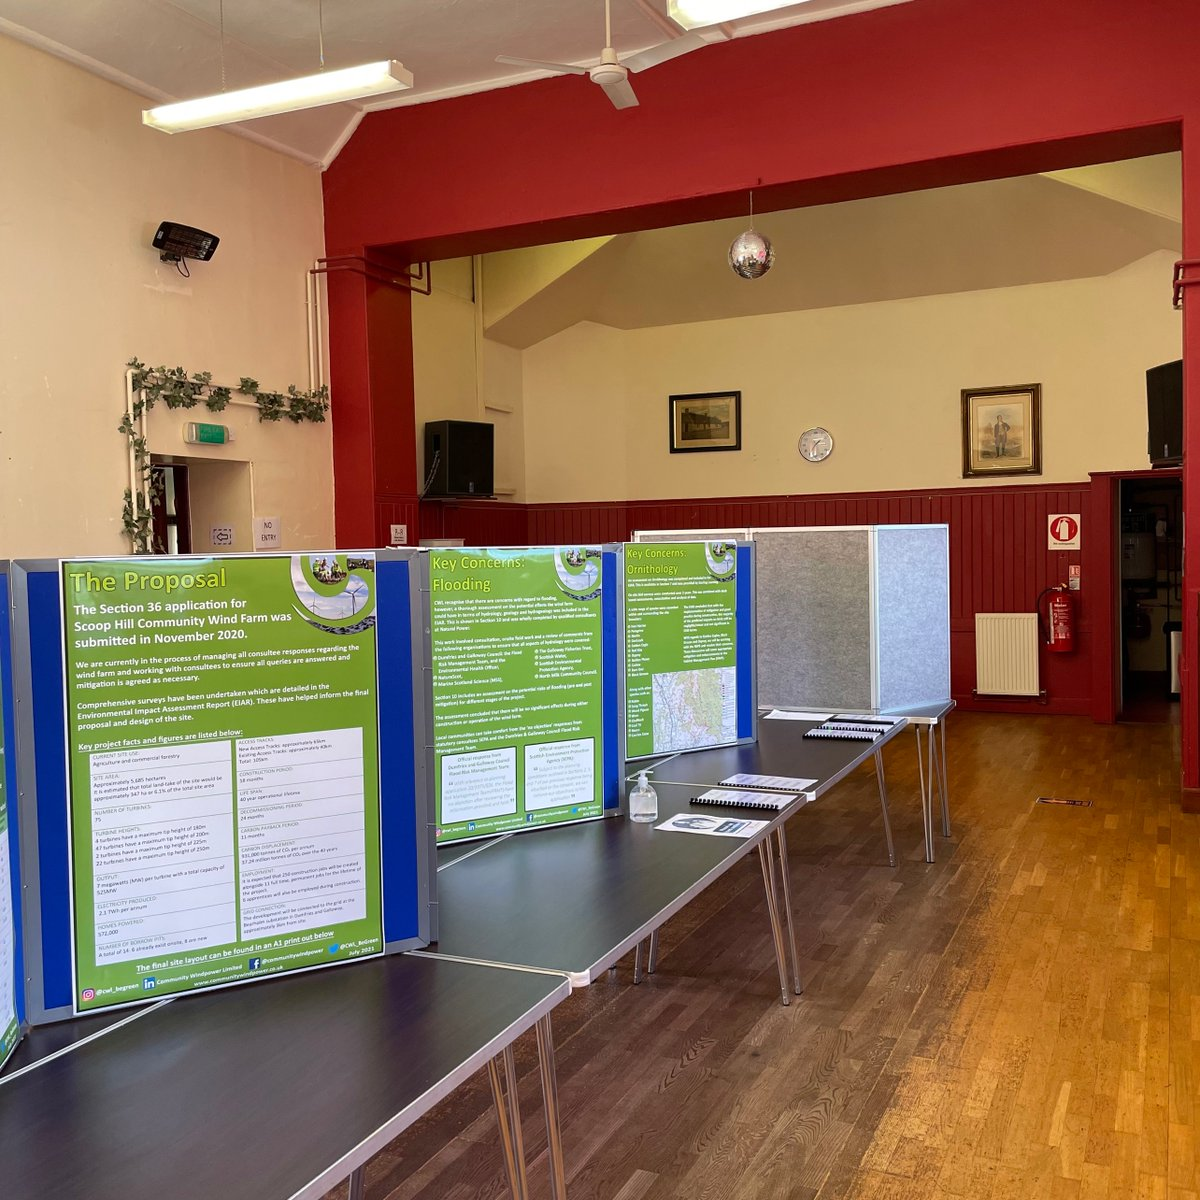 test Twitter Media - Our Scoop Hill Community Wind Farm public exhibitions are now over. We received lots of feedback on the project and we were able to keep residents up to date.  Thank you for visiting and all the content is available here: here:https://t.co/7uugJw8zfI   #Engagement #Community https://t.co/JqTvj92qDV